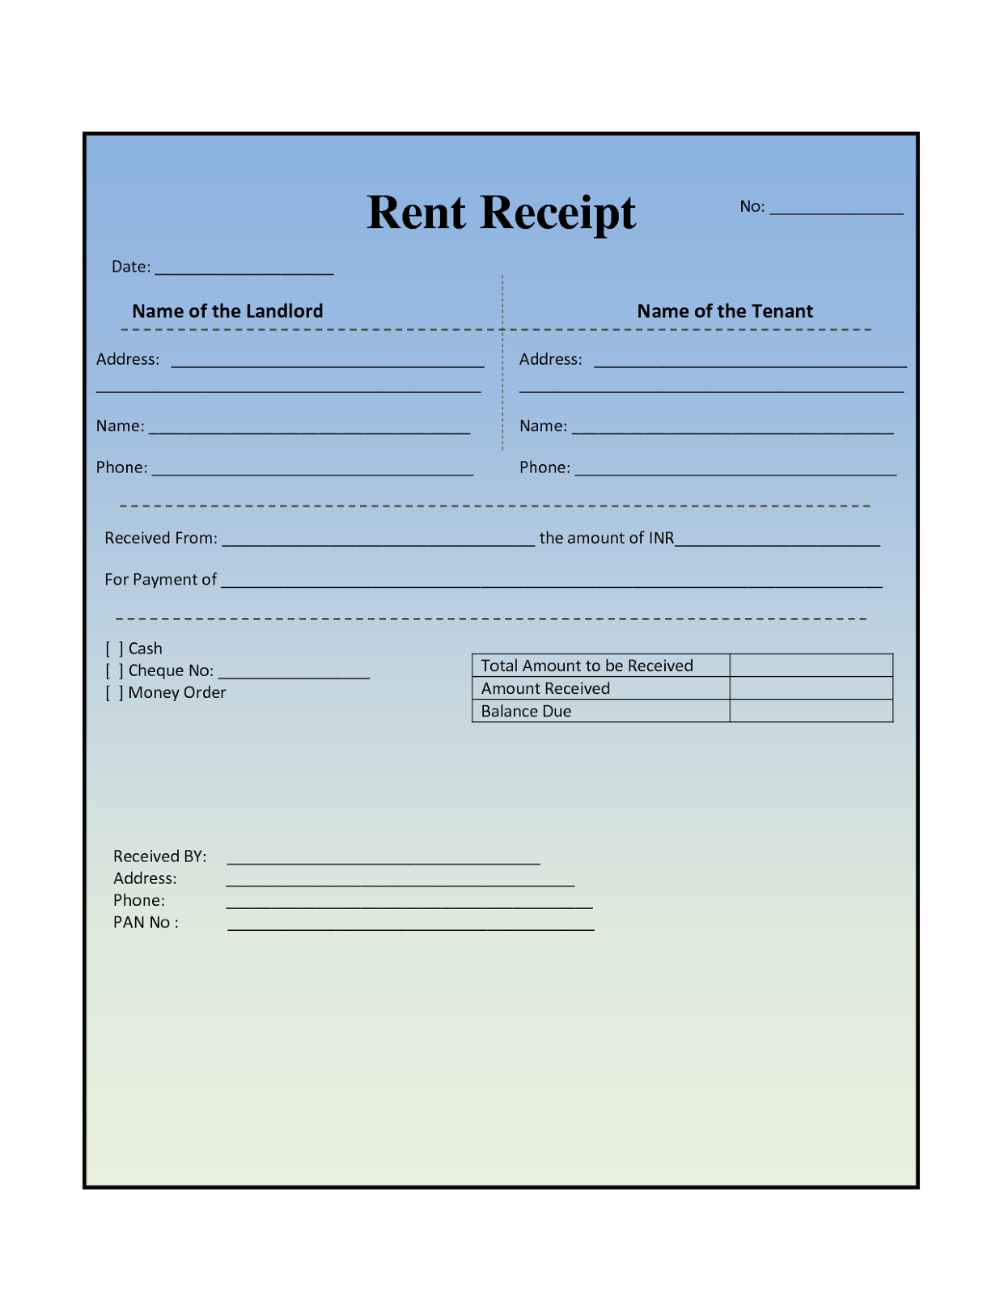 House Rental Invoice Template In Excel Format House Rental Invoice Inside Invoice Template For Rent 10 Prof Invoice Template Receipt Template Invoice Sample